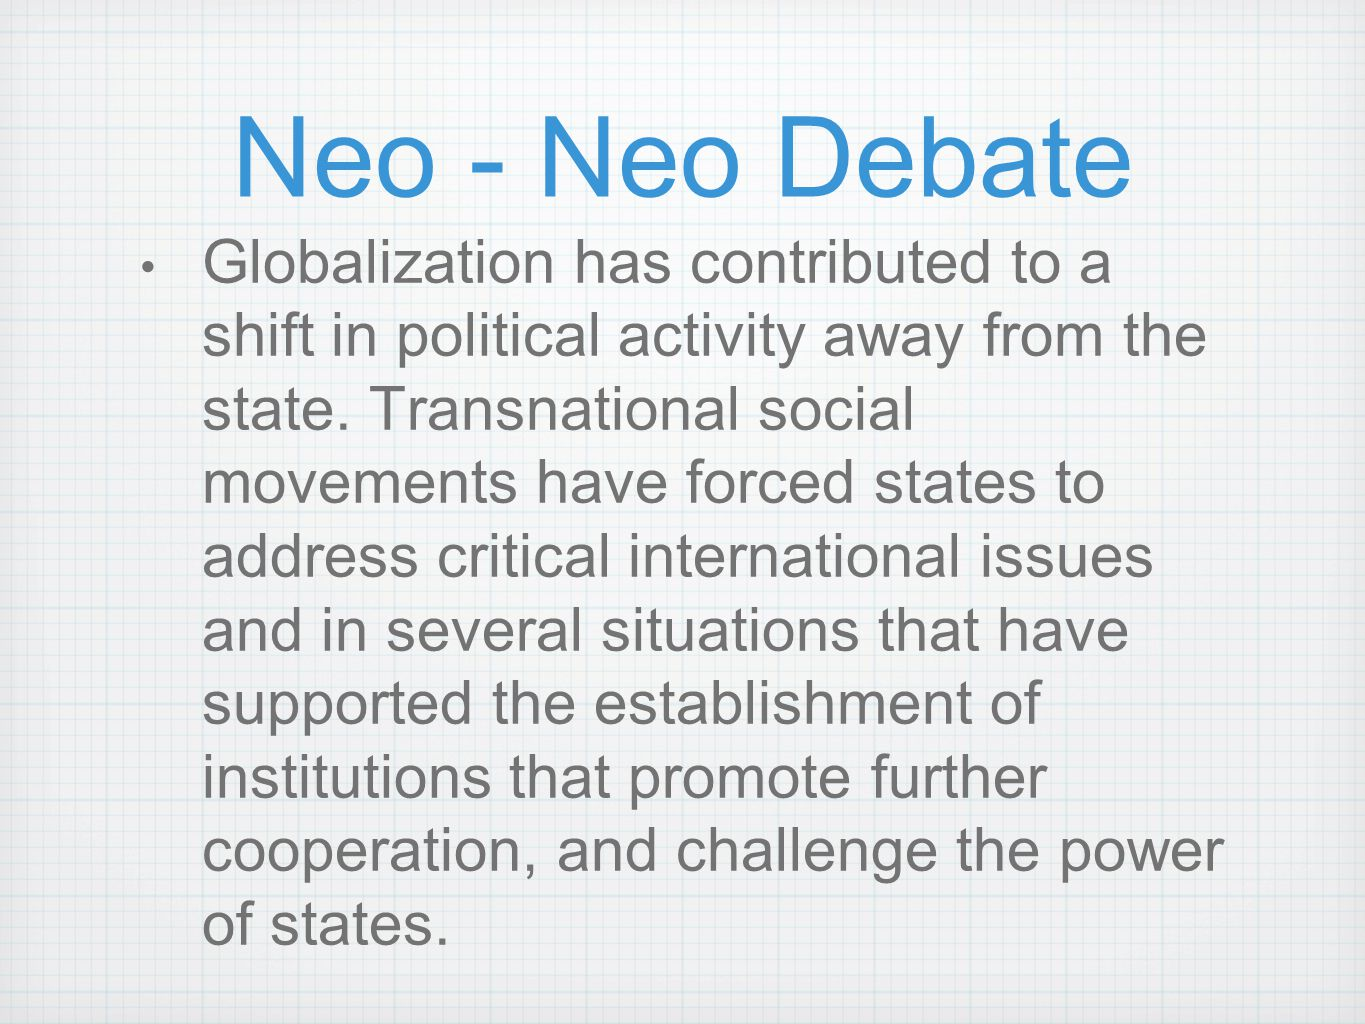 Neo - Neo Debate Globalization has contributed to a shift in political activity away from the state. Transnational social movements have forced states